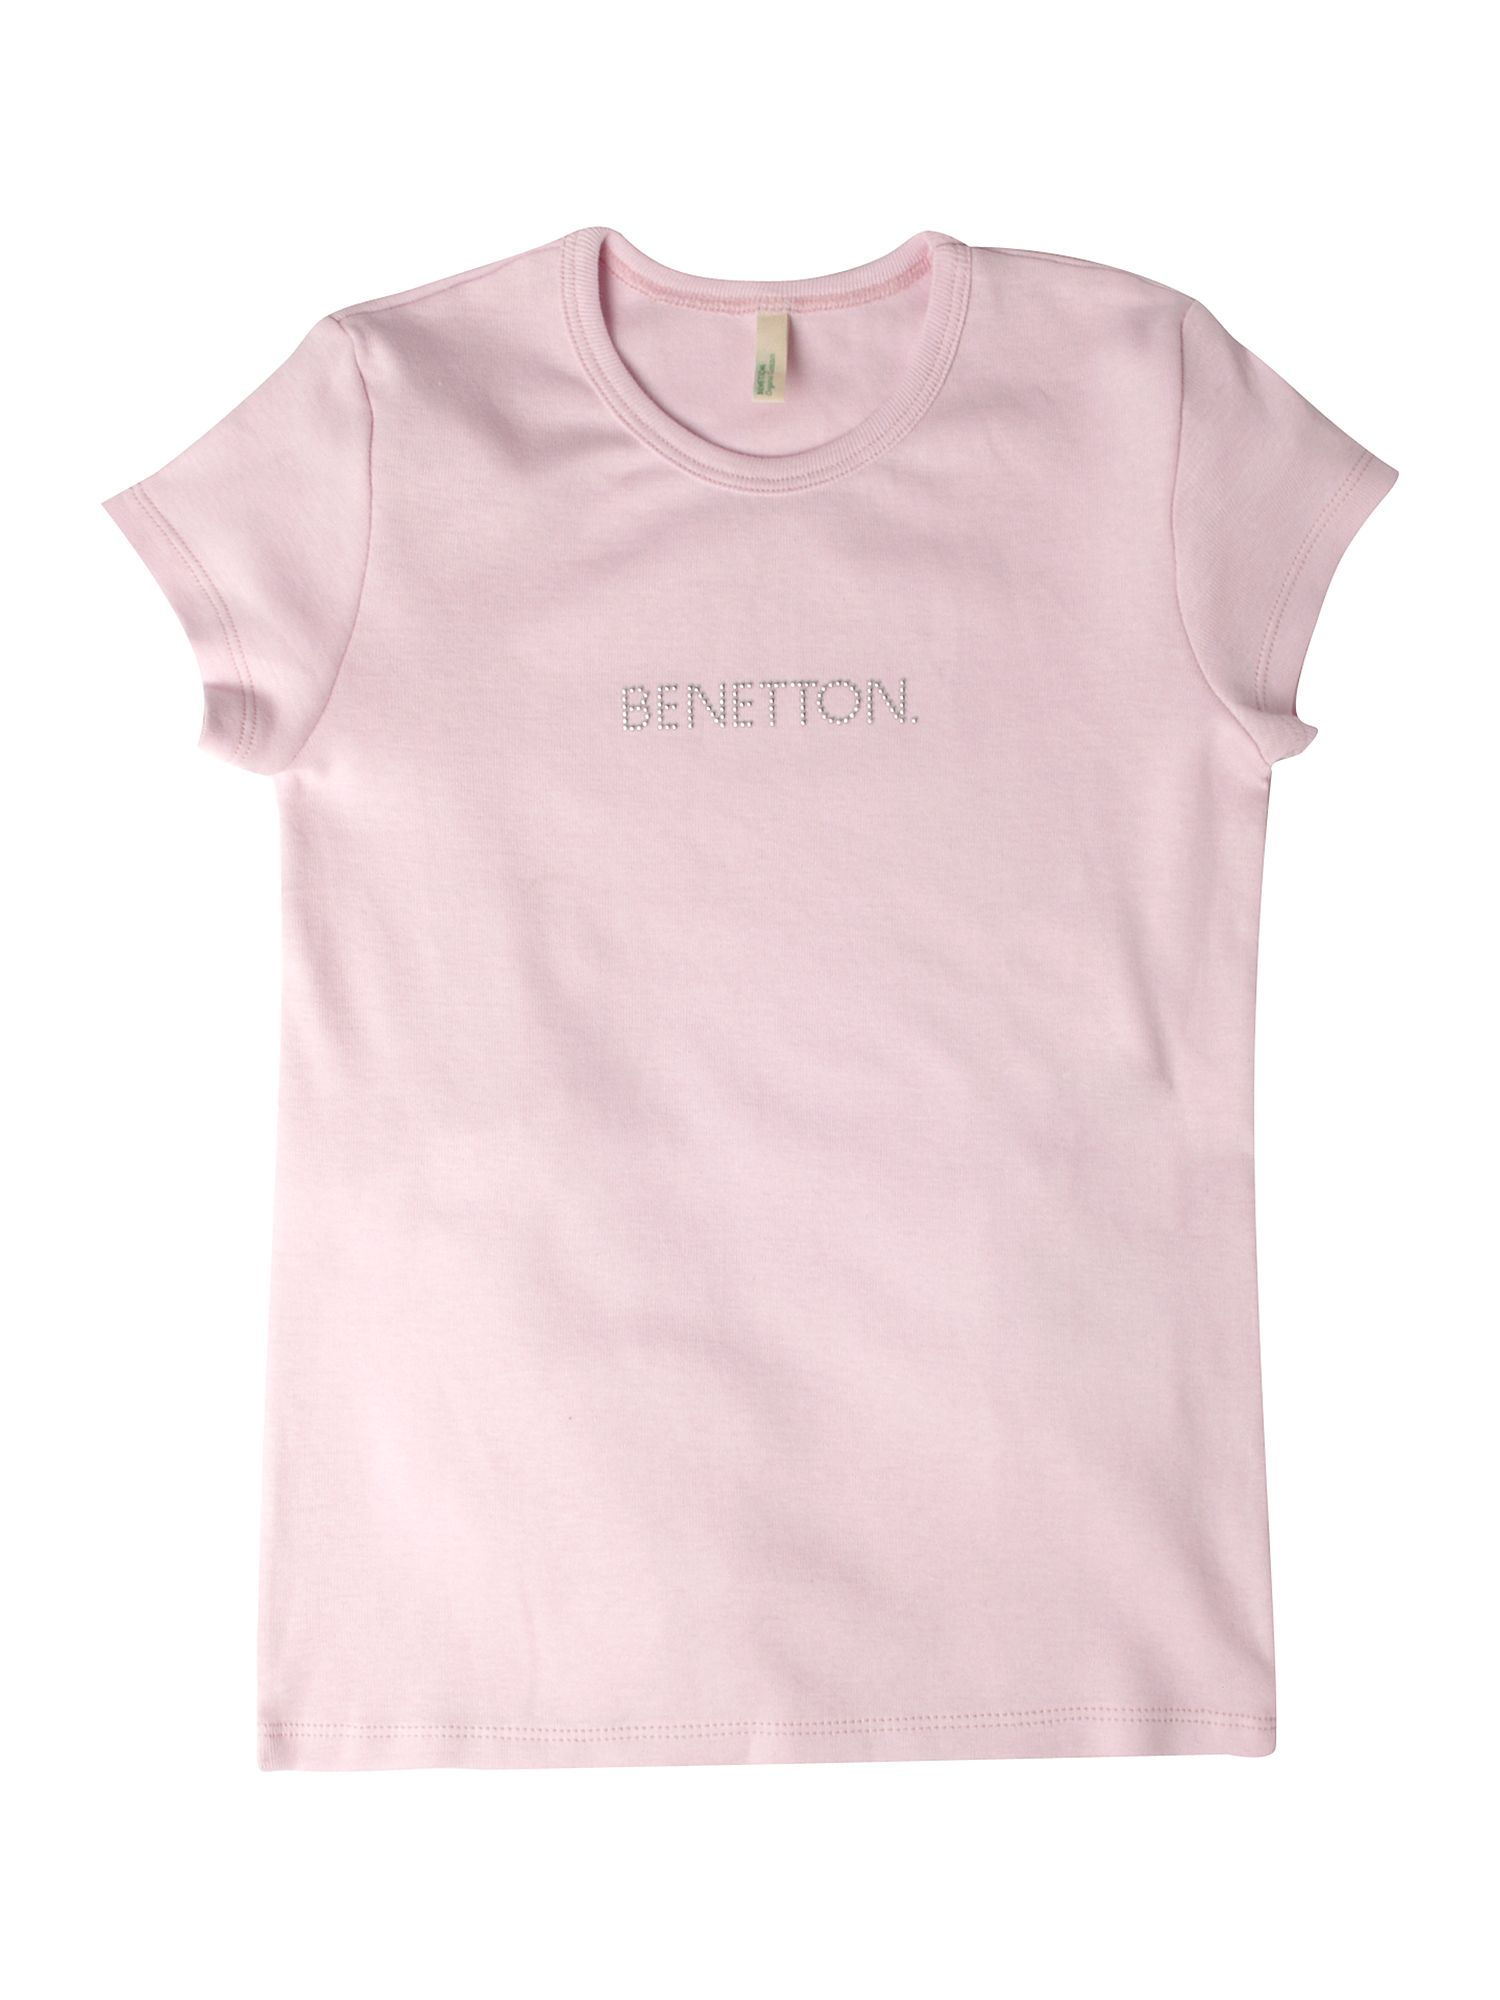 Benetton Short-sleeved logo crew neck T-shirt Pastel Pink product image